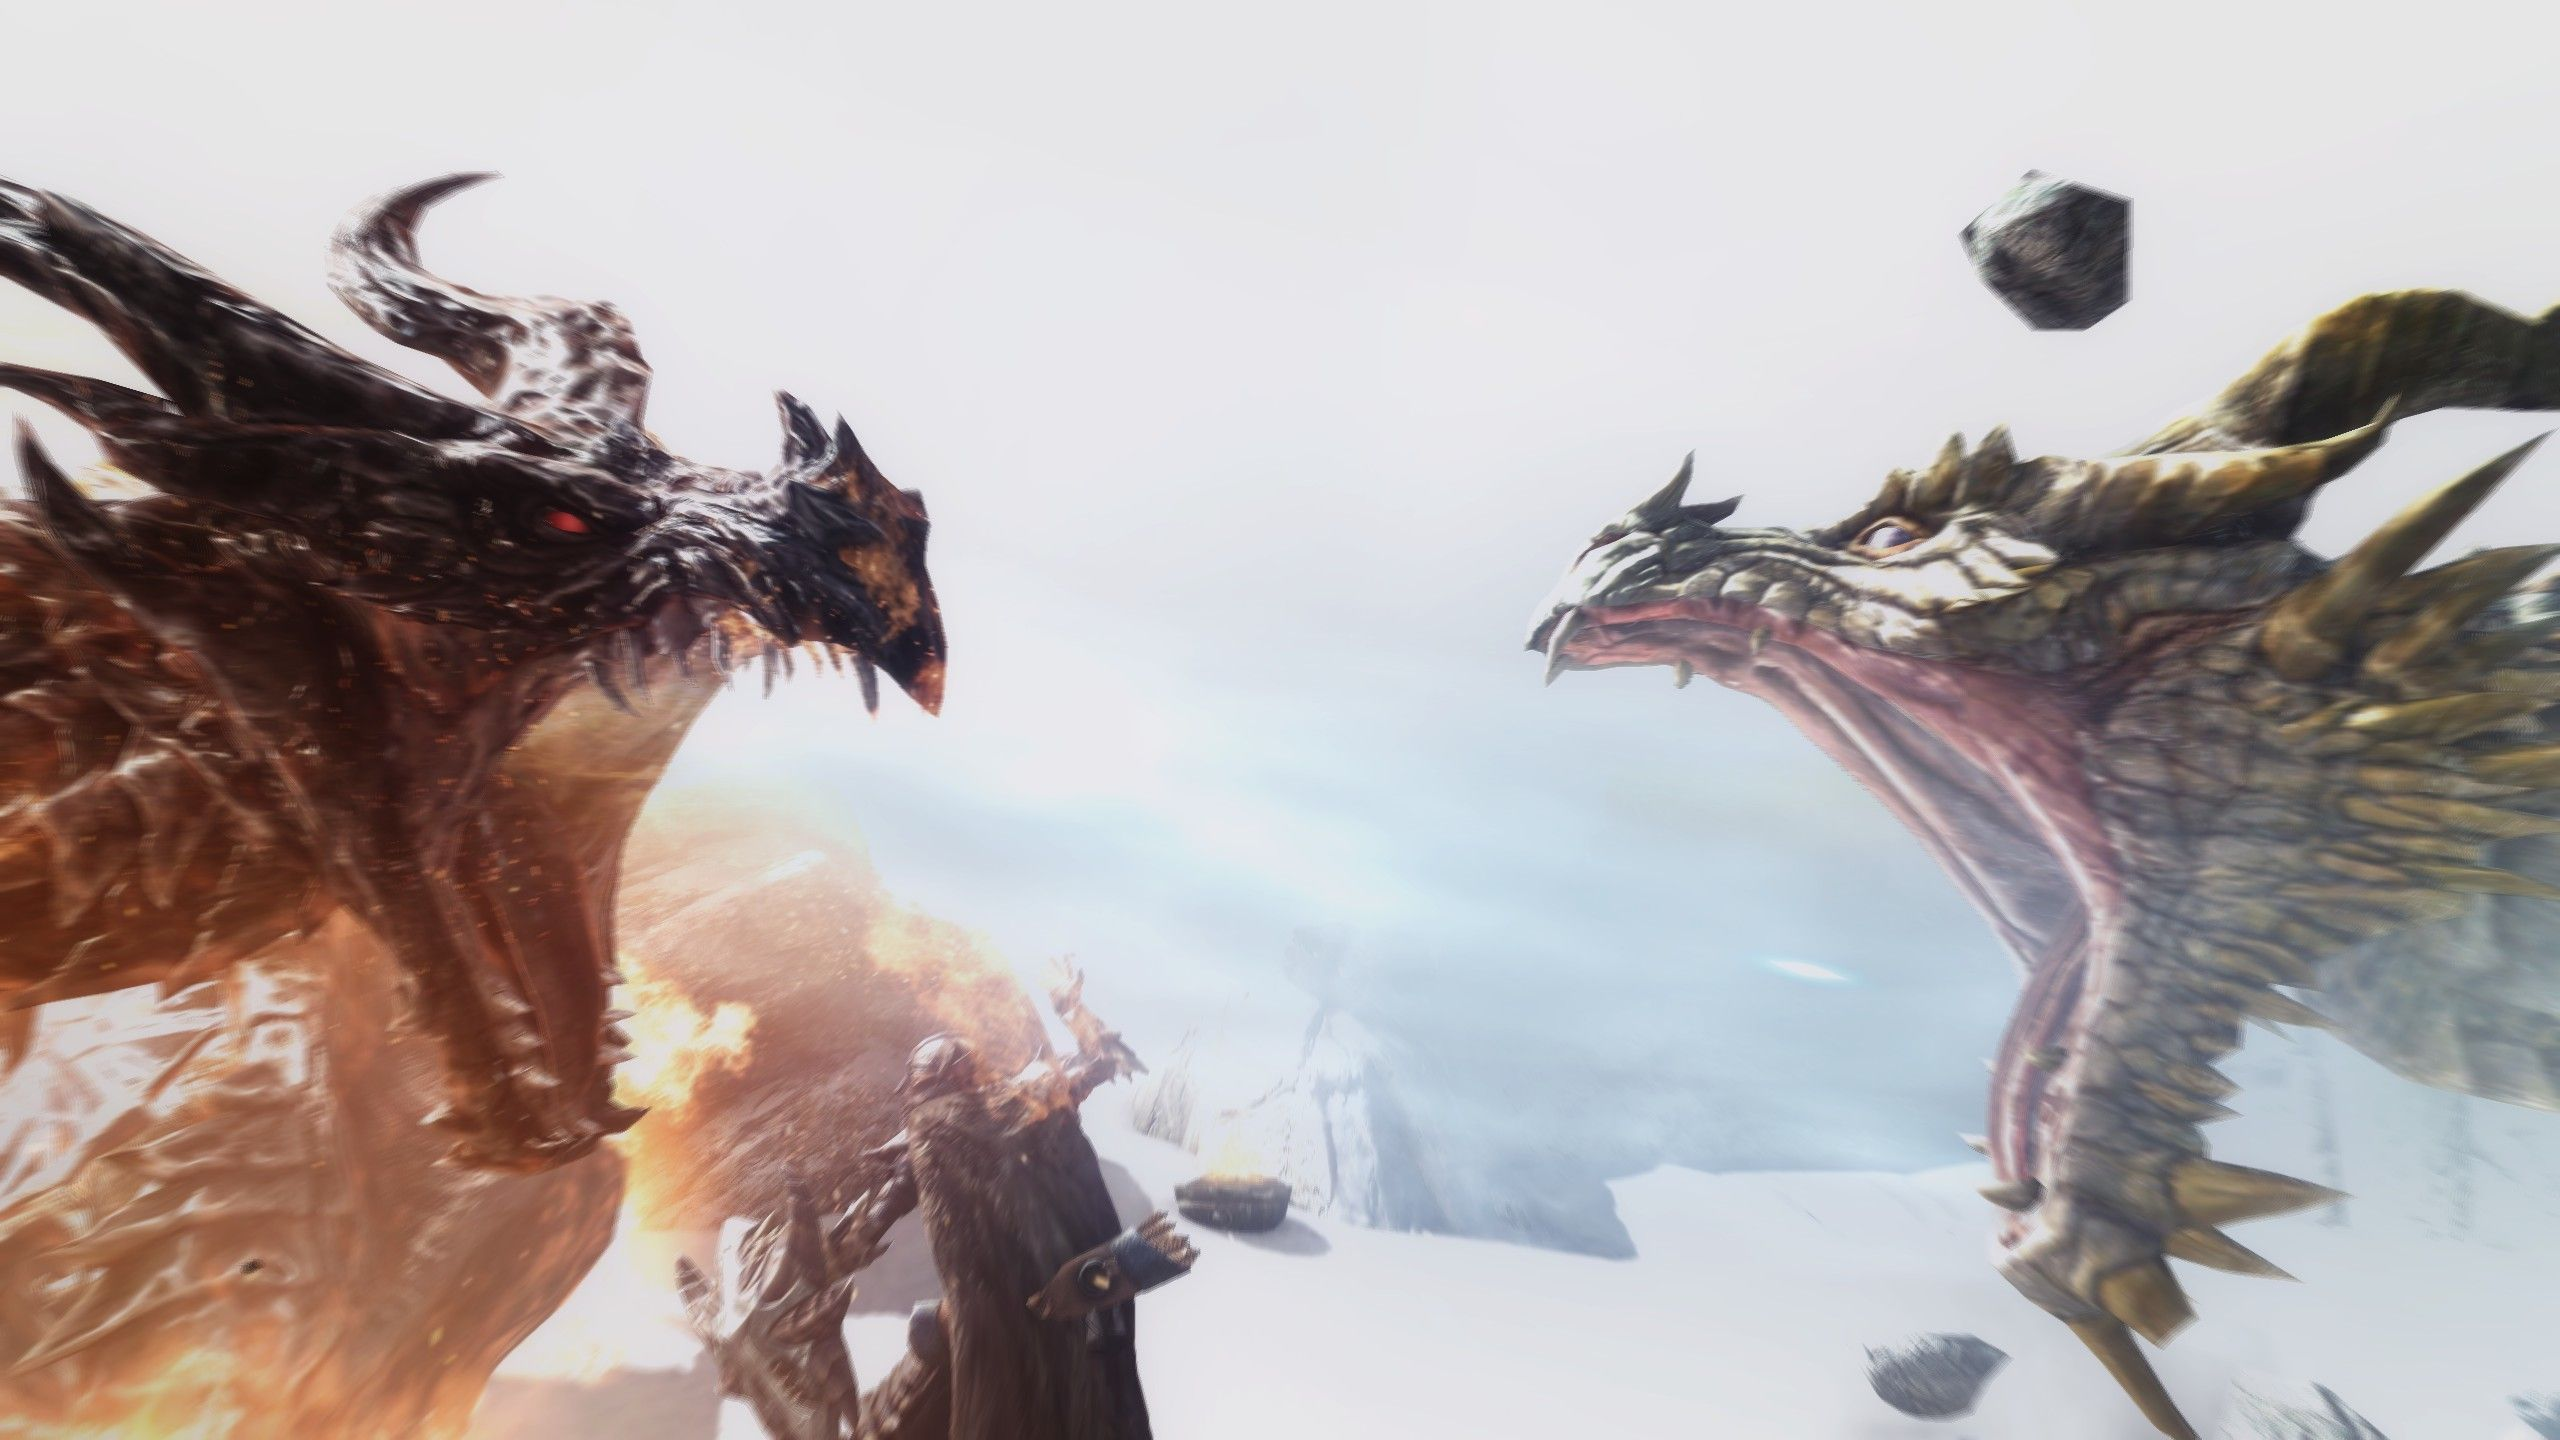 5 Alduin The World Eater Hd Wallpapers Backgrounds Wallpaper Gallery Alduin Pinterest Wallpaper Gallery Skyrim Wallpaper Gallery Wallpaper Backgrounds